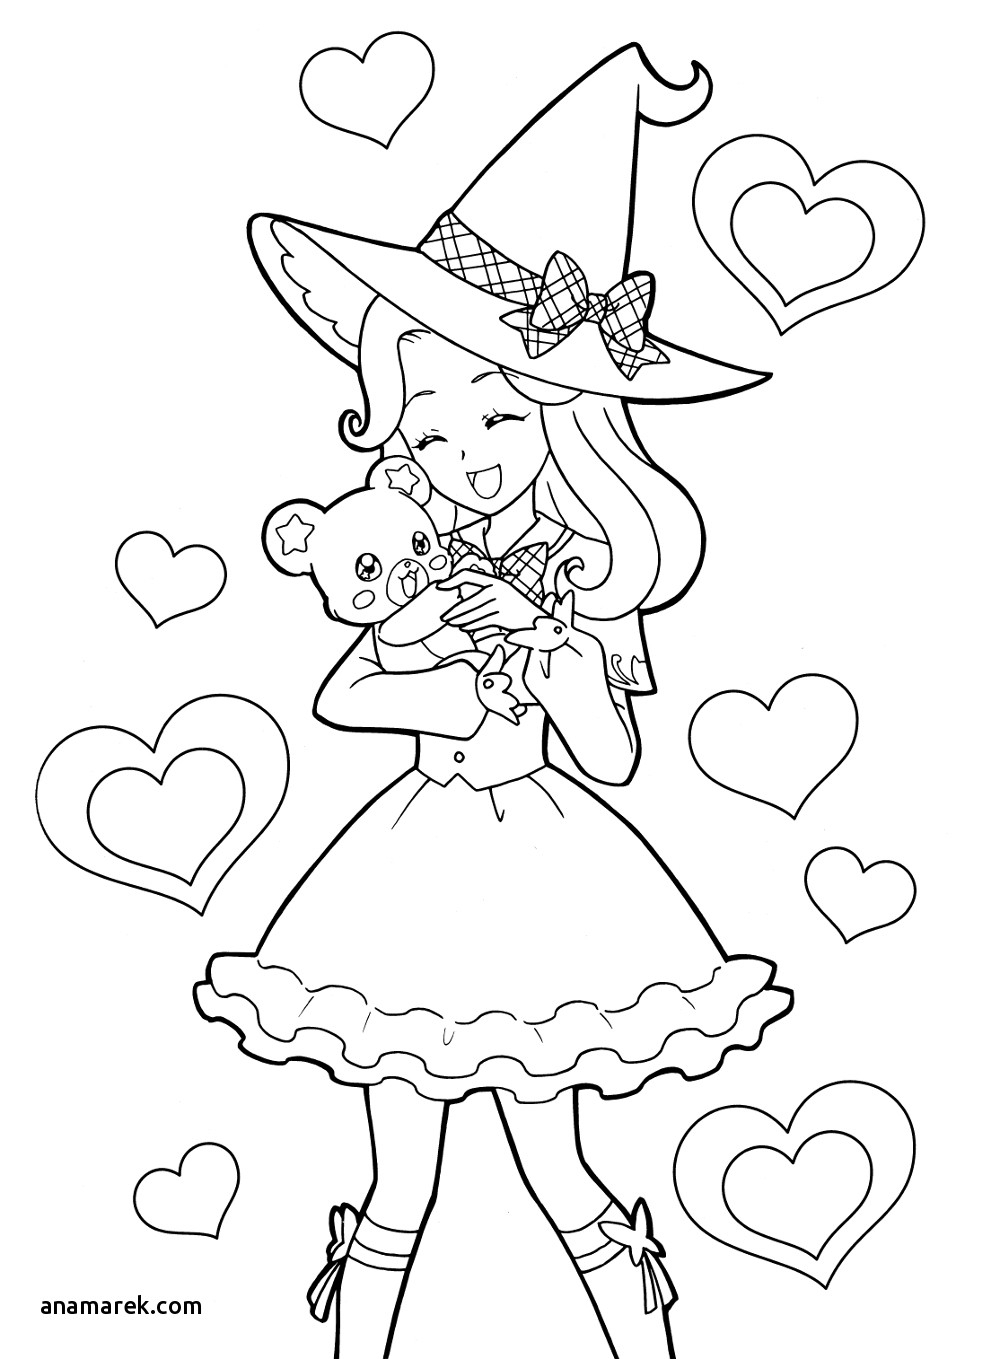 Undertale Coloring Pages  to Print 3j - Free For kids